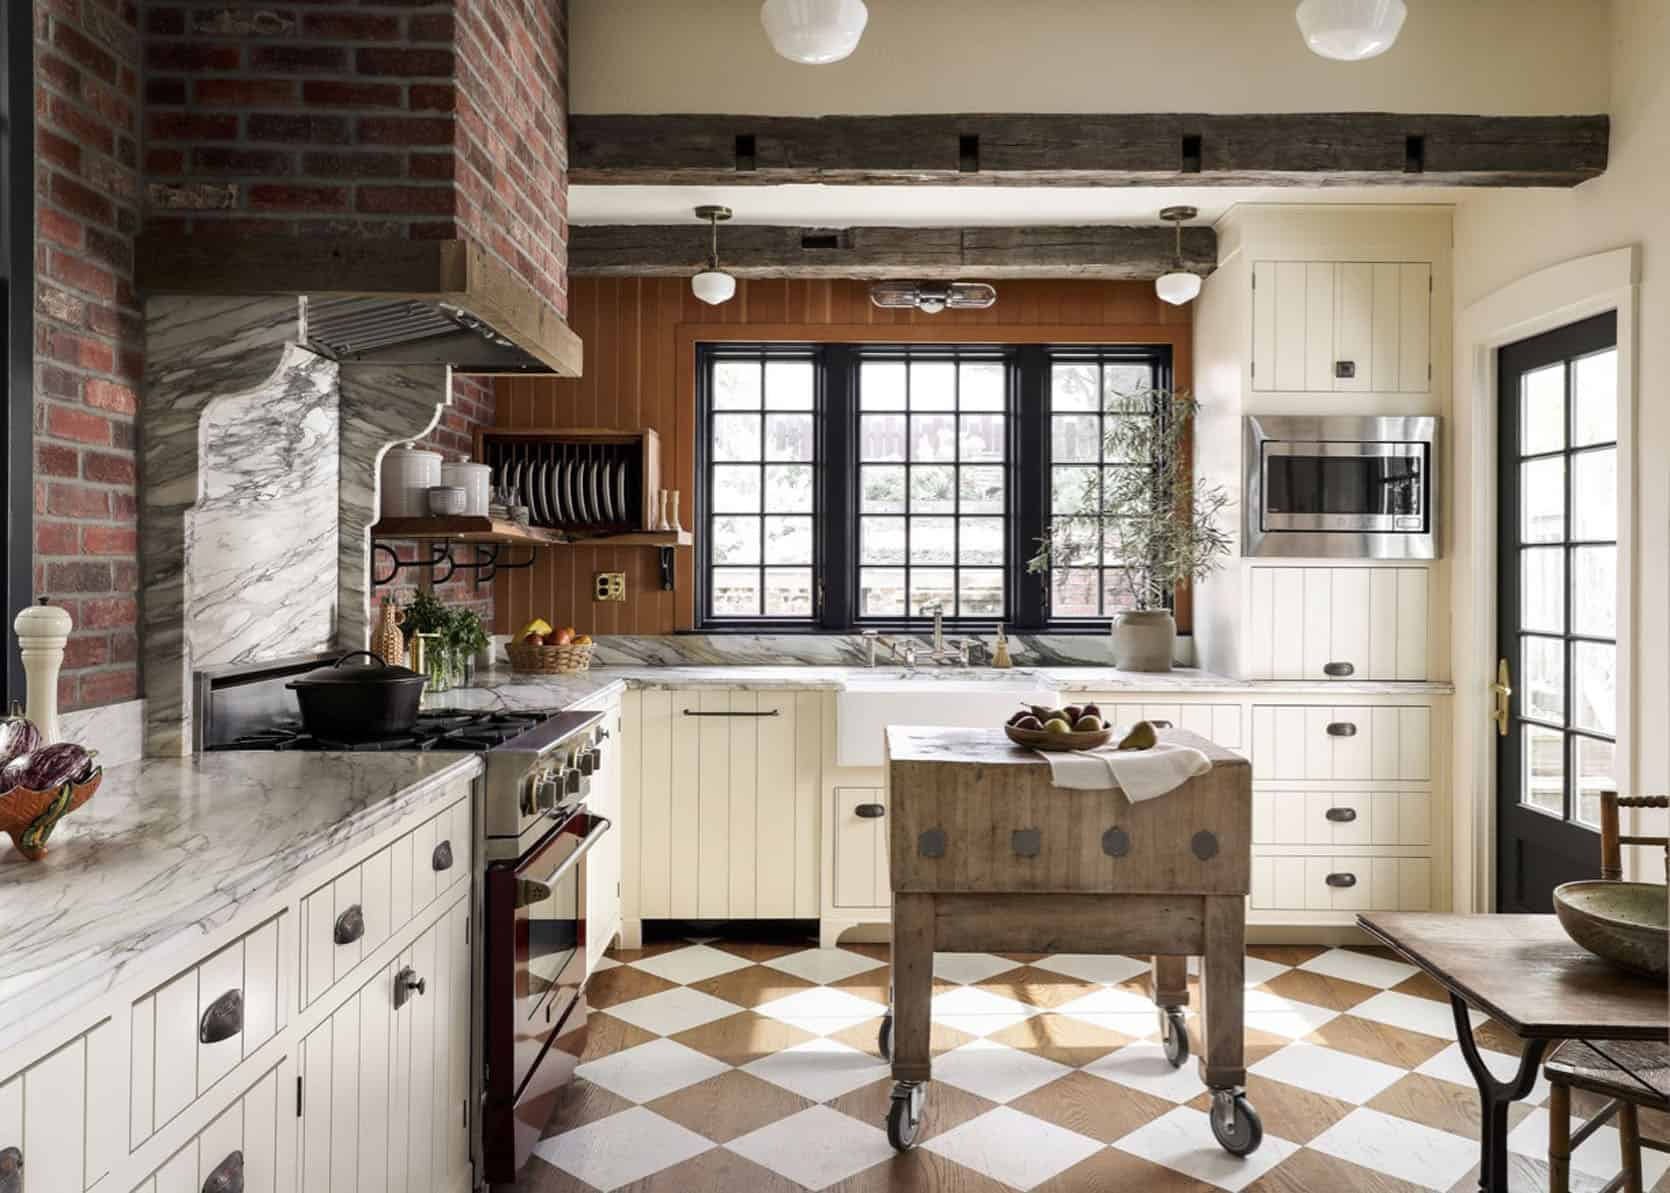 The 20 Kitchen Trends In 20 That Are Both VERY Exciting And ...